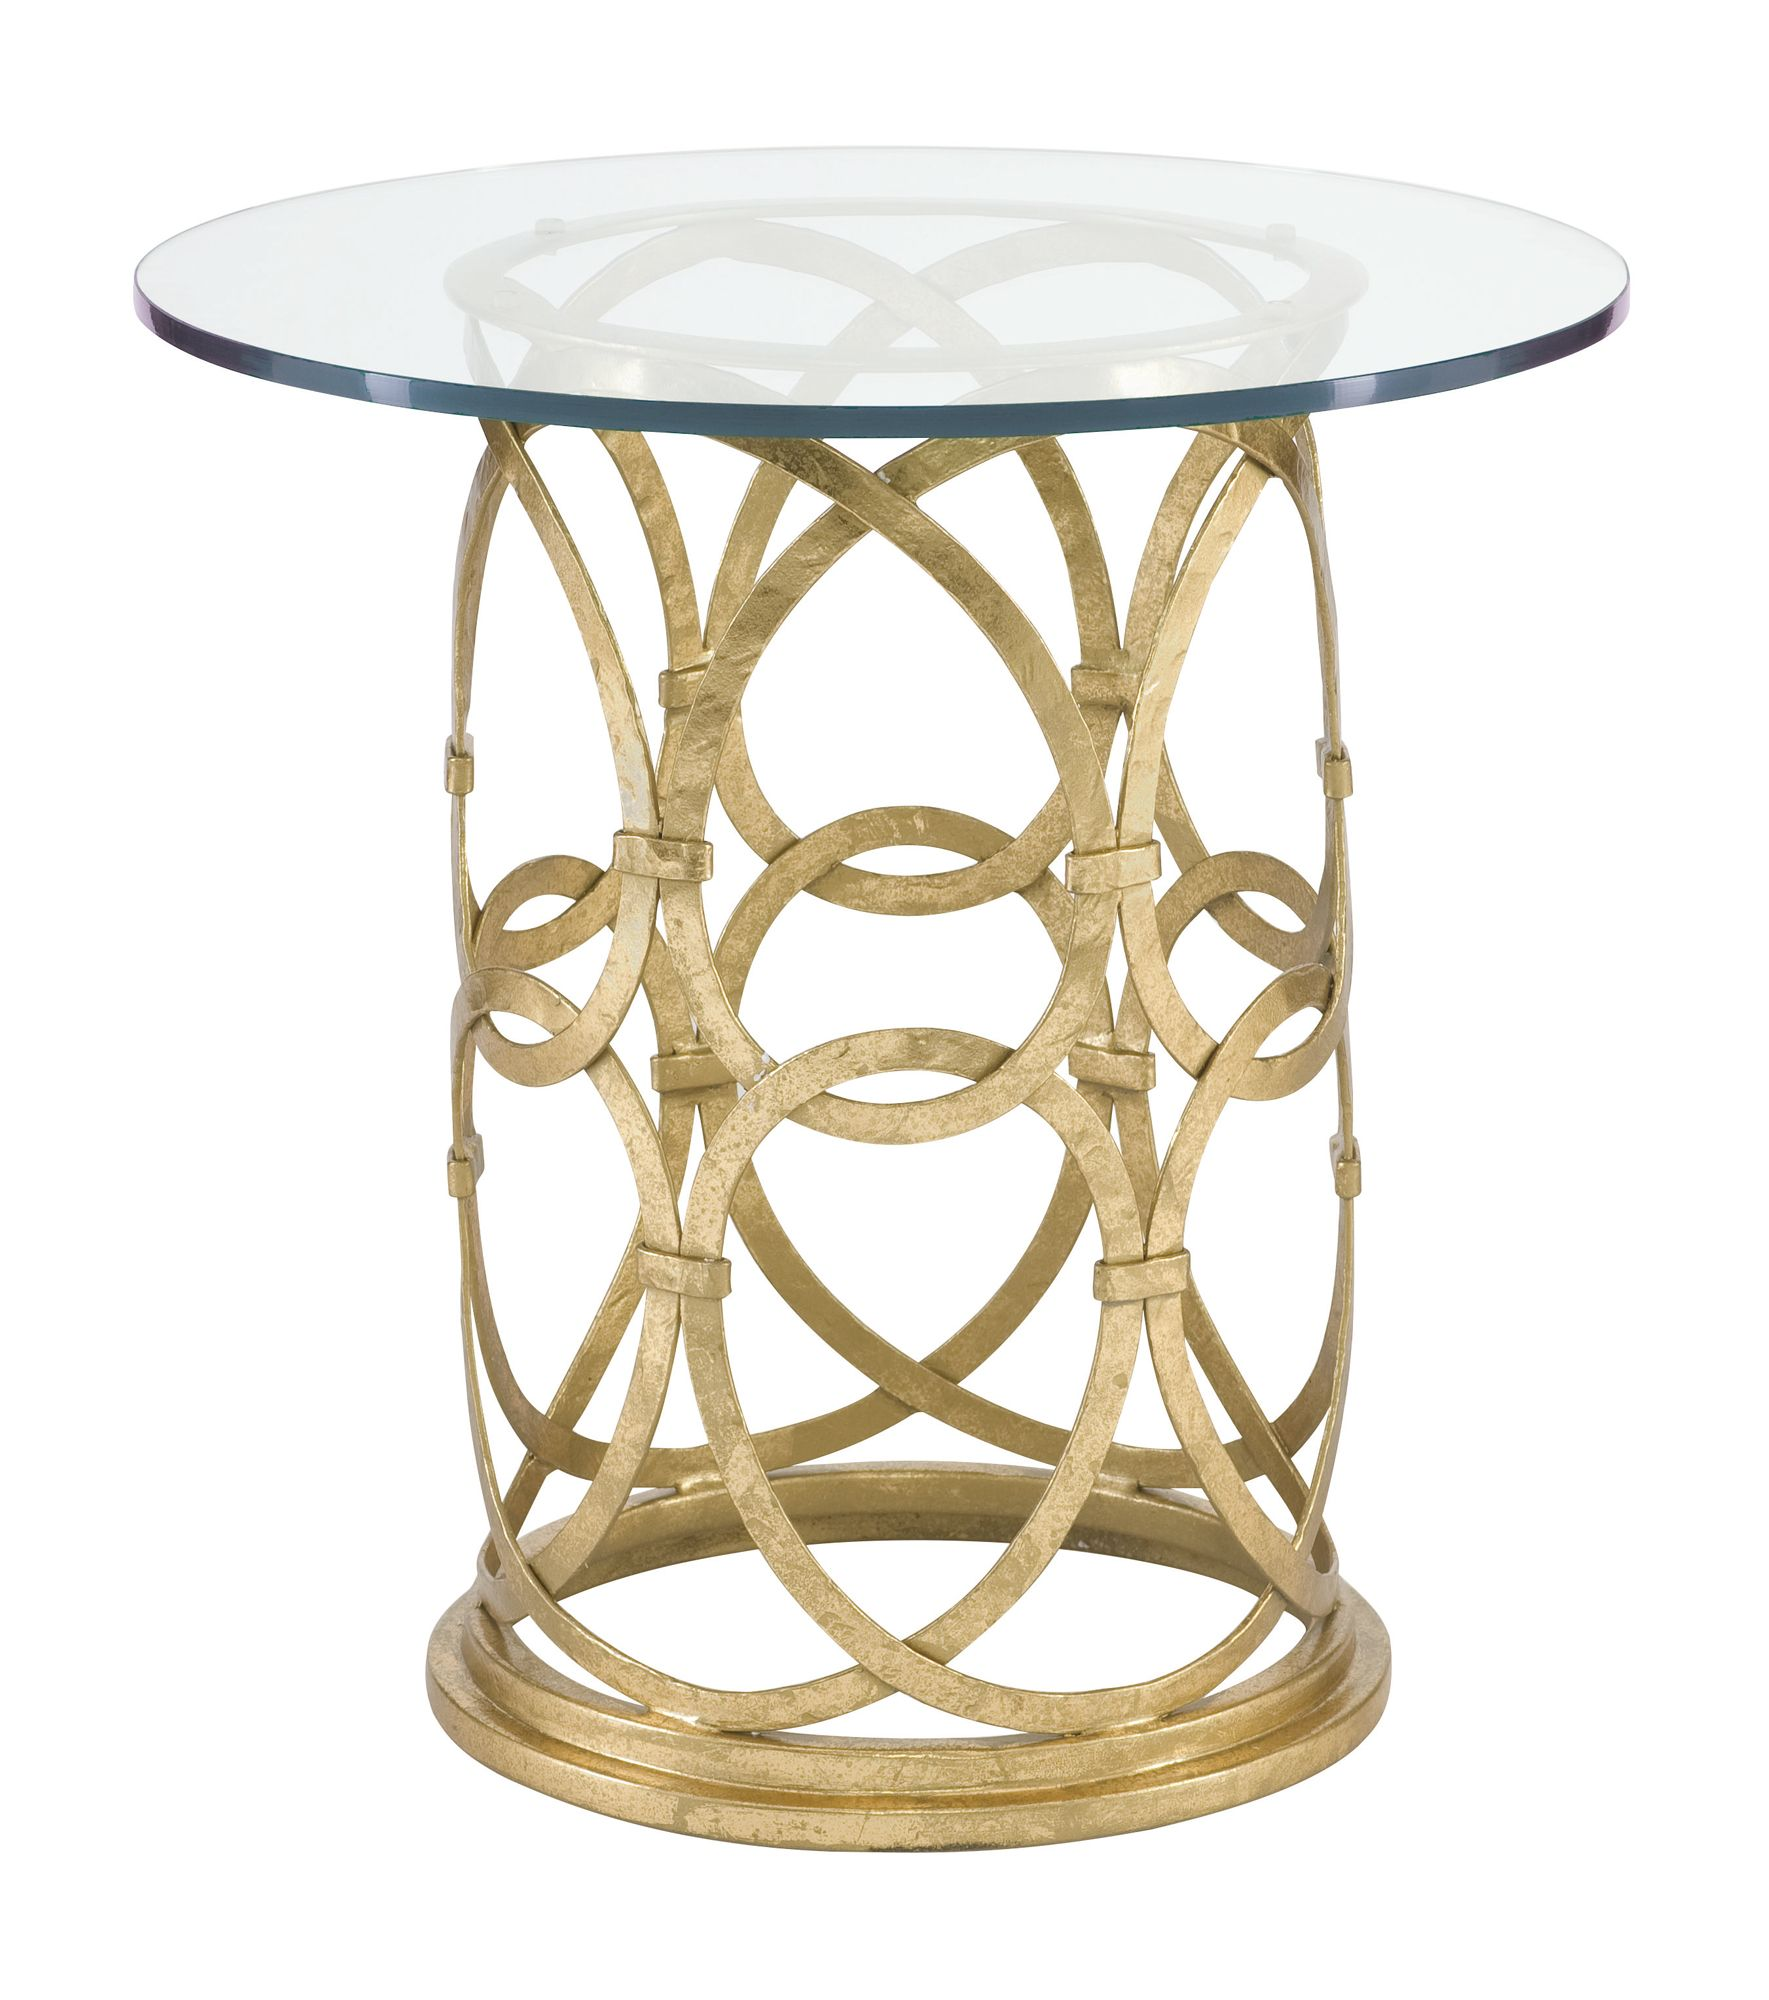 geneva round side table bernhardt dia gold hammered accent glass top base reclaimed barn wood furniture edmonton kitchen island trolley ethan allen drop leaf coffee make your own